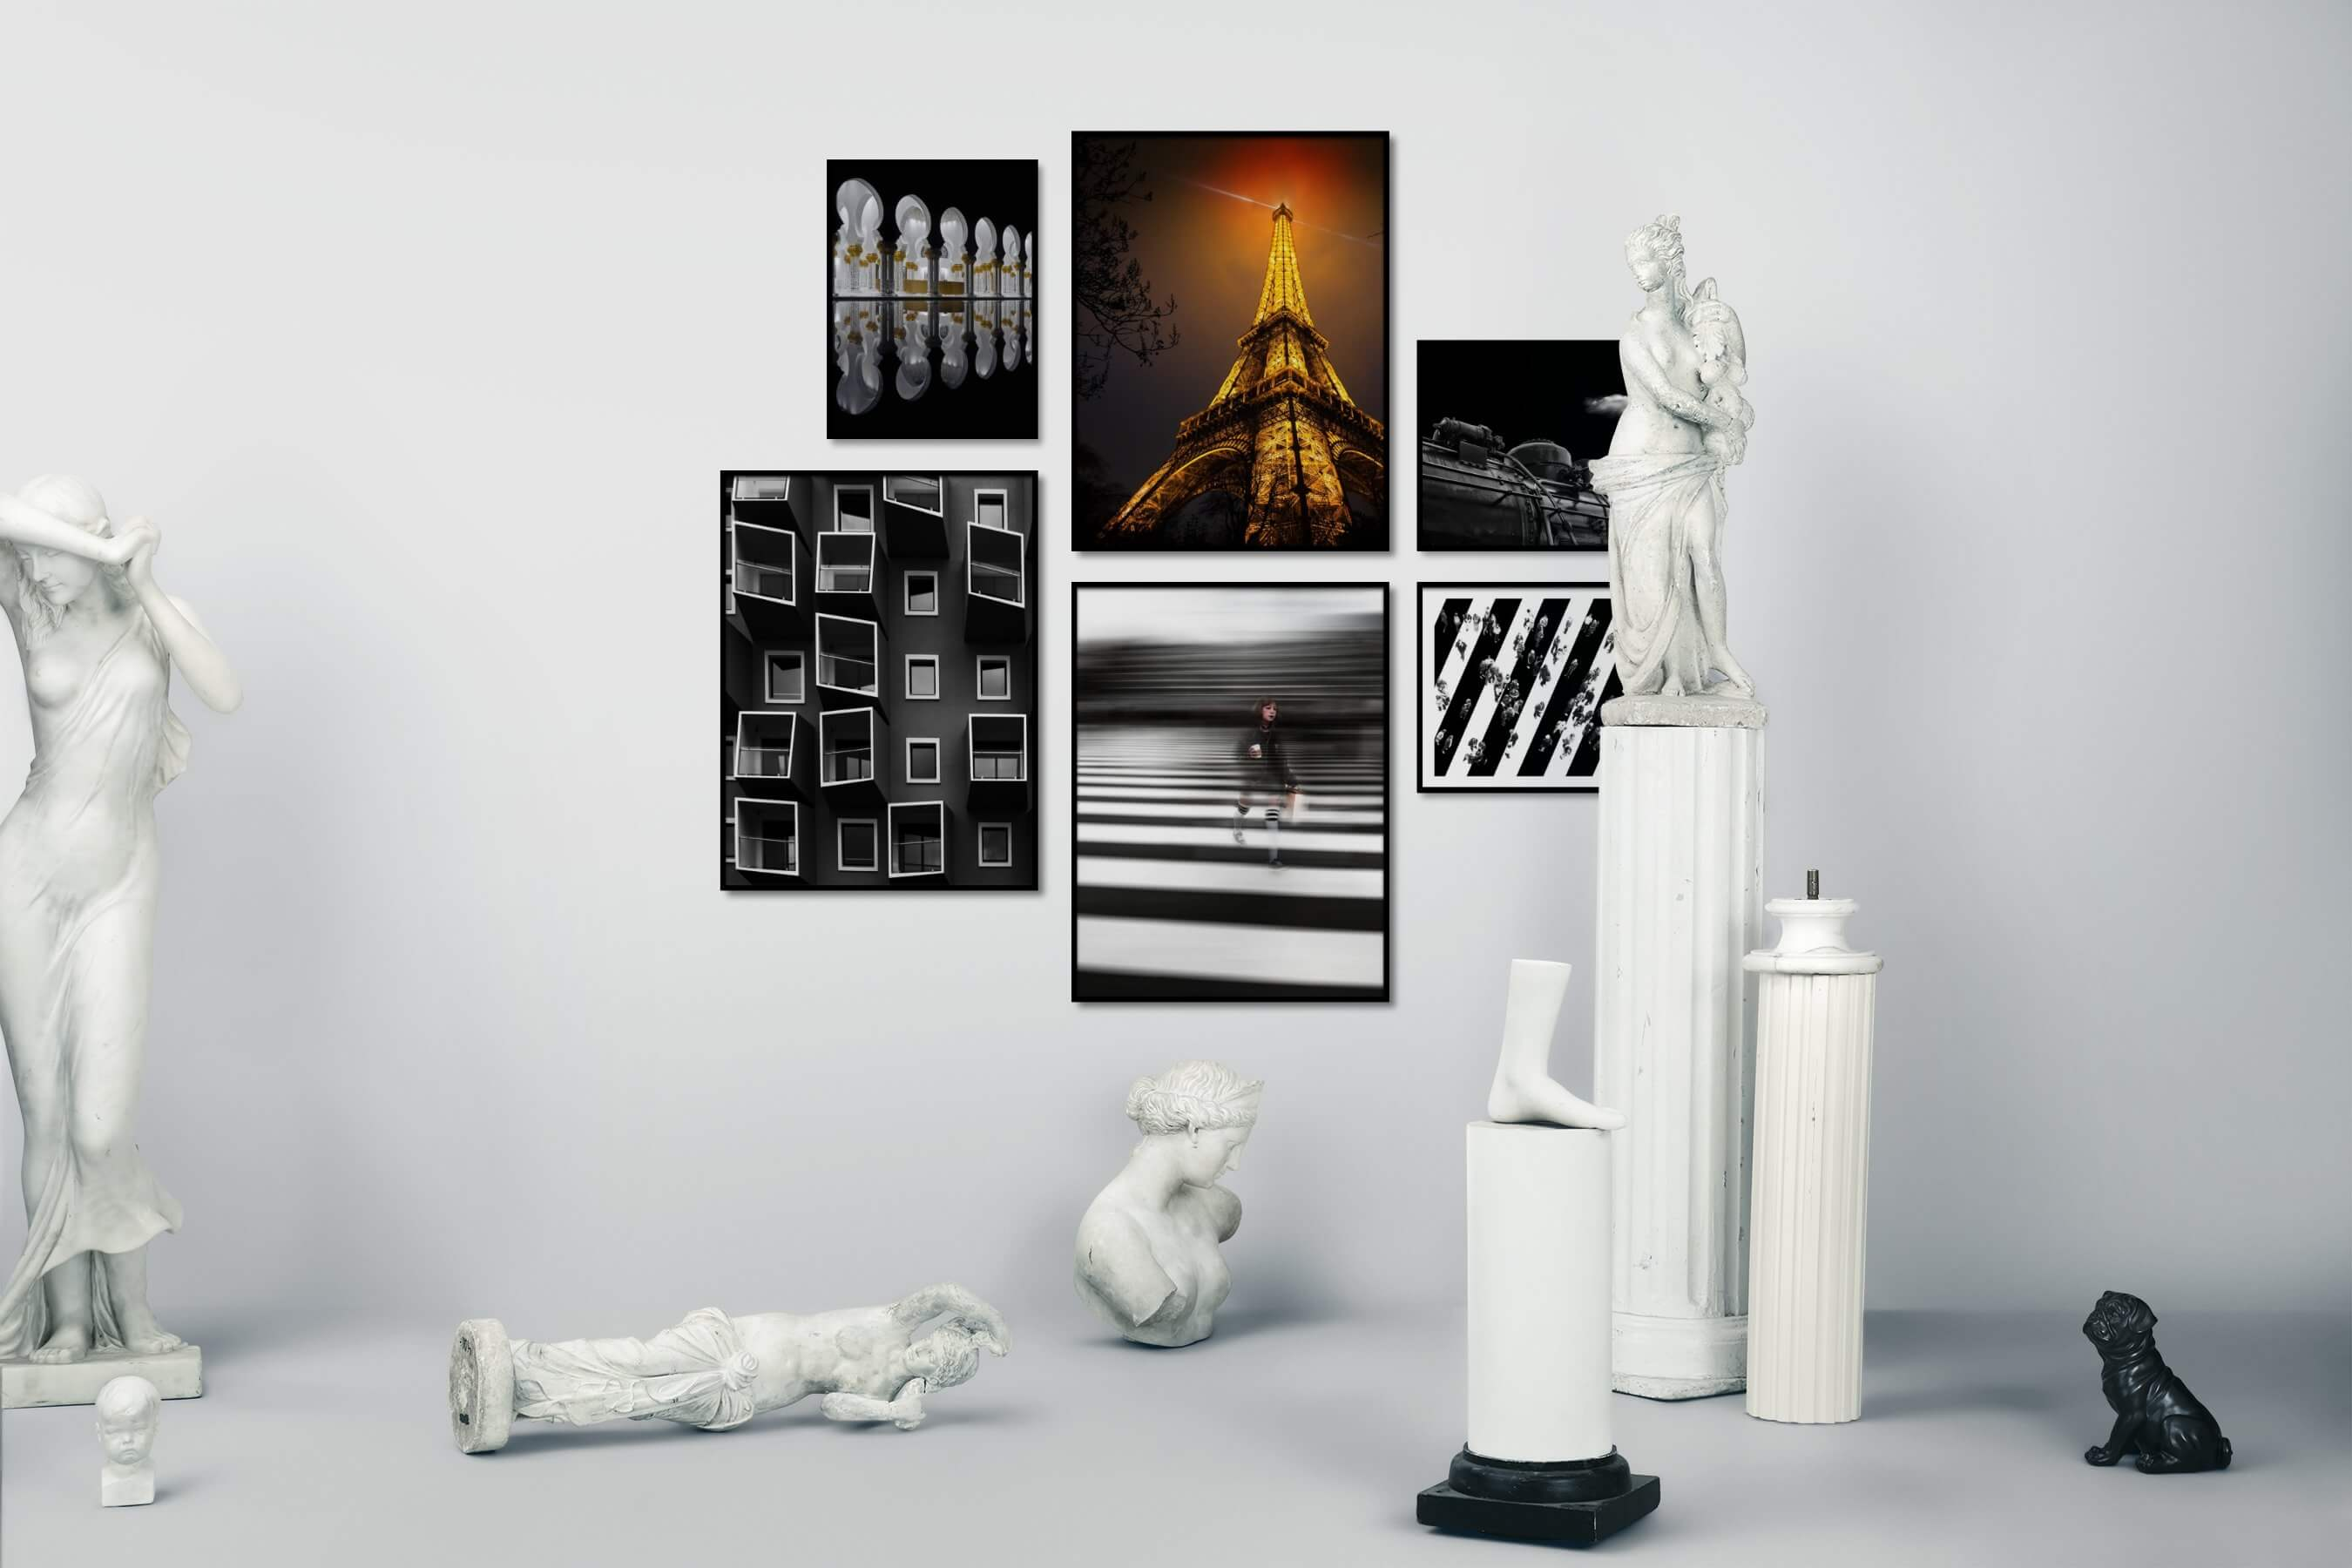 Gallery wall idea with six framed pictures arranged on a wall depicting Dark Tones, For the Moderate, City Life, Black & White, and For the Minimalist